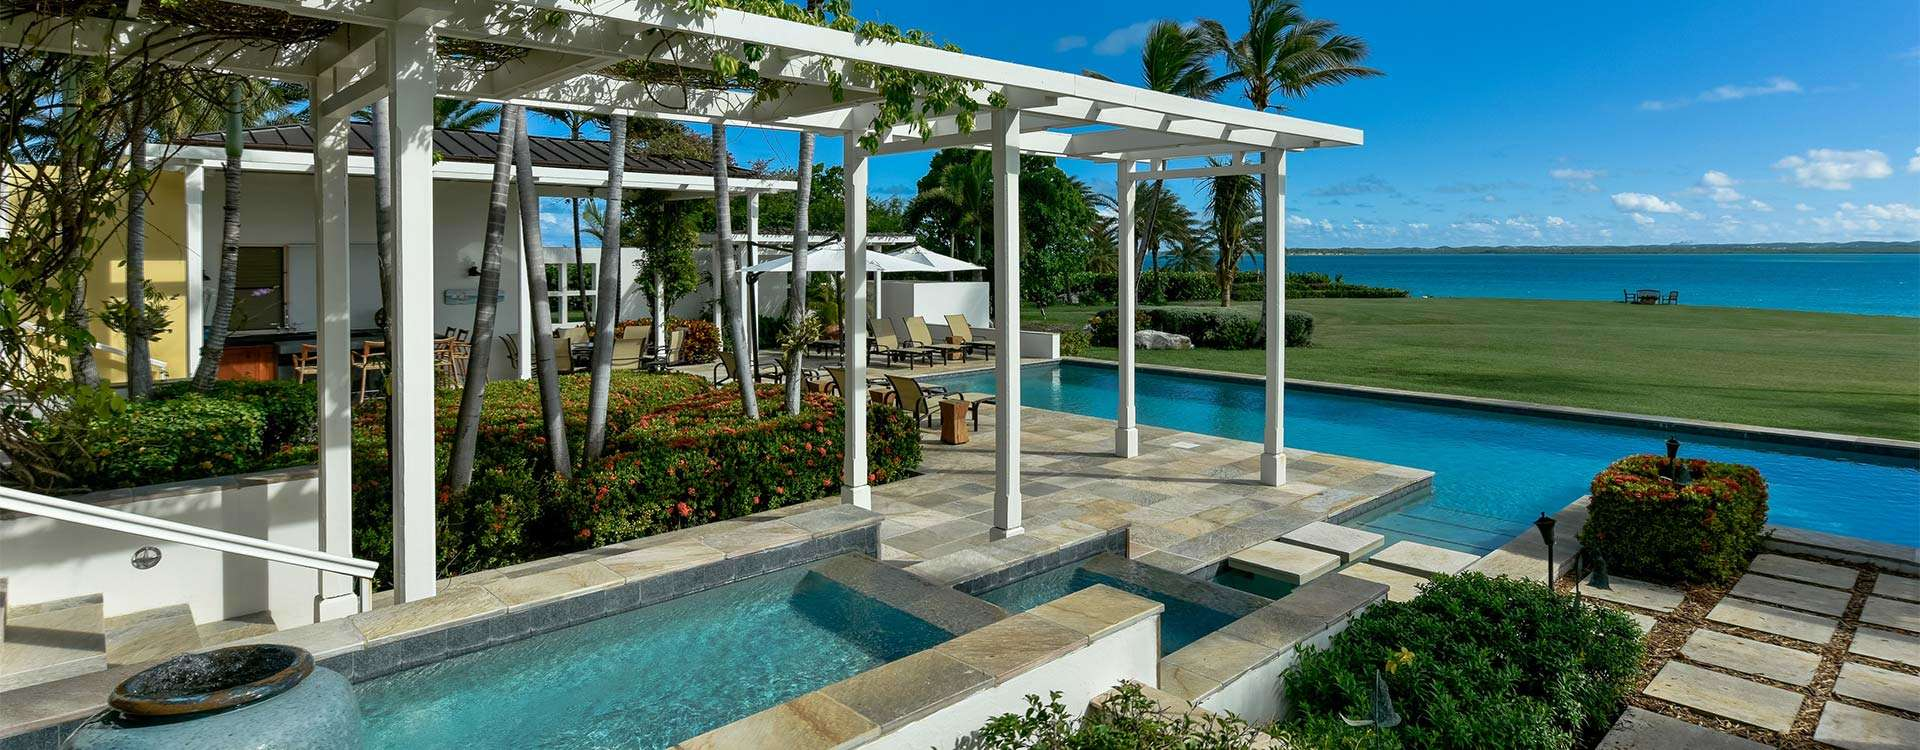 Luxury villa rentals caribbean - Antigua - Jumby bay - Turtle Crossing - Image 1/6